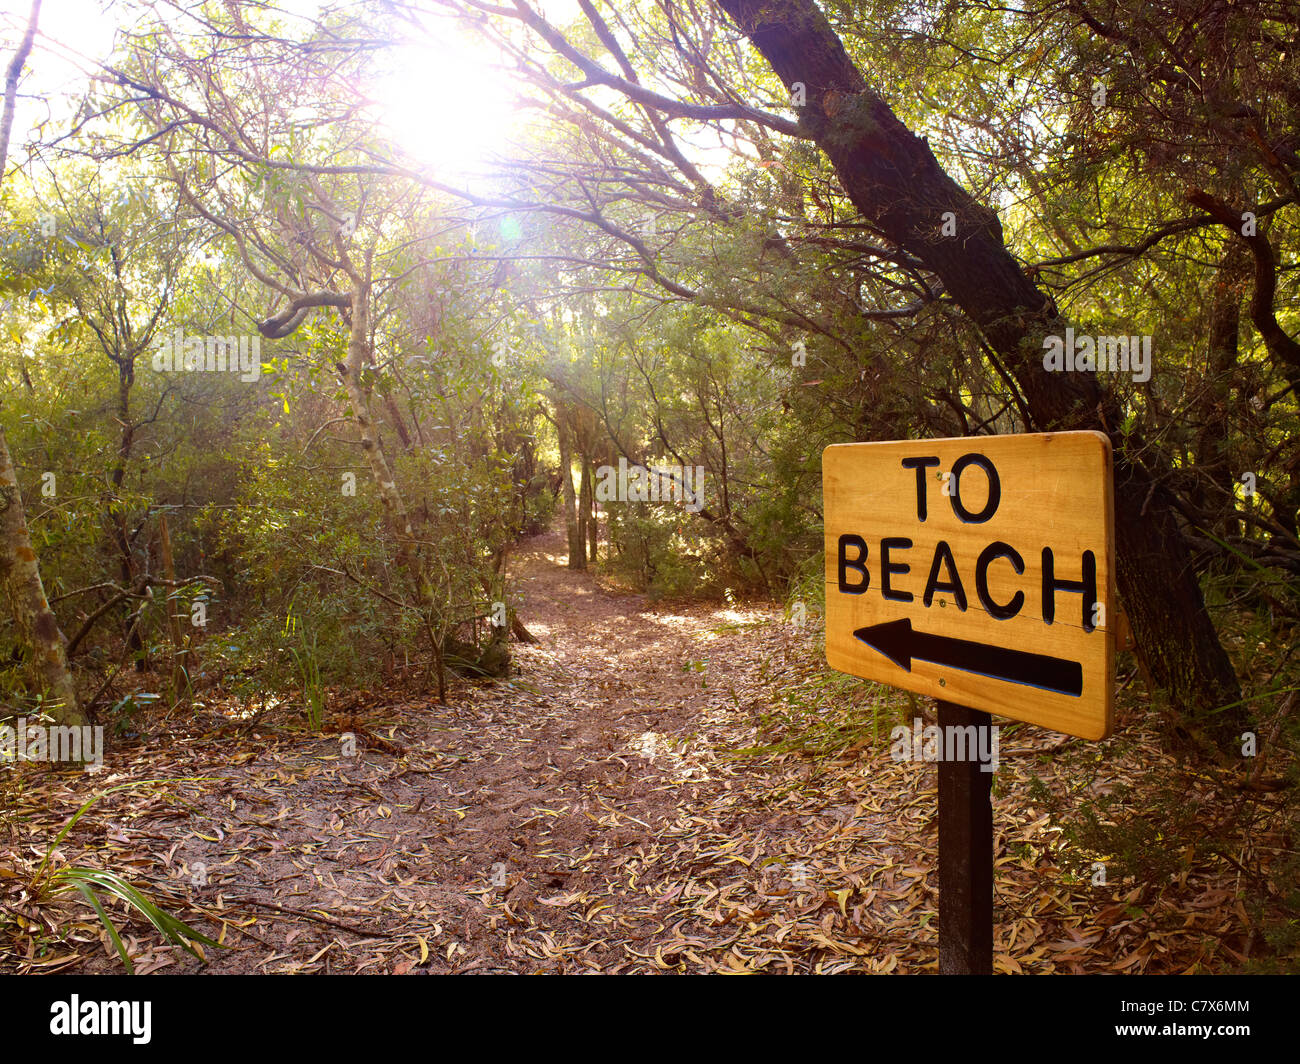 Sign marking track to beach - Stock Image